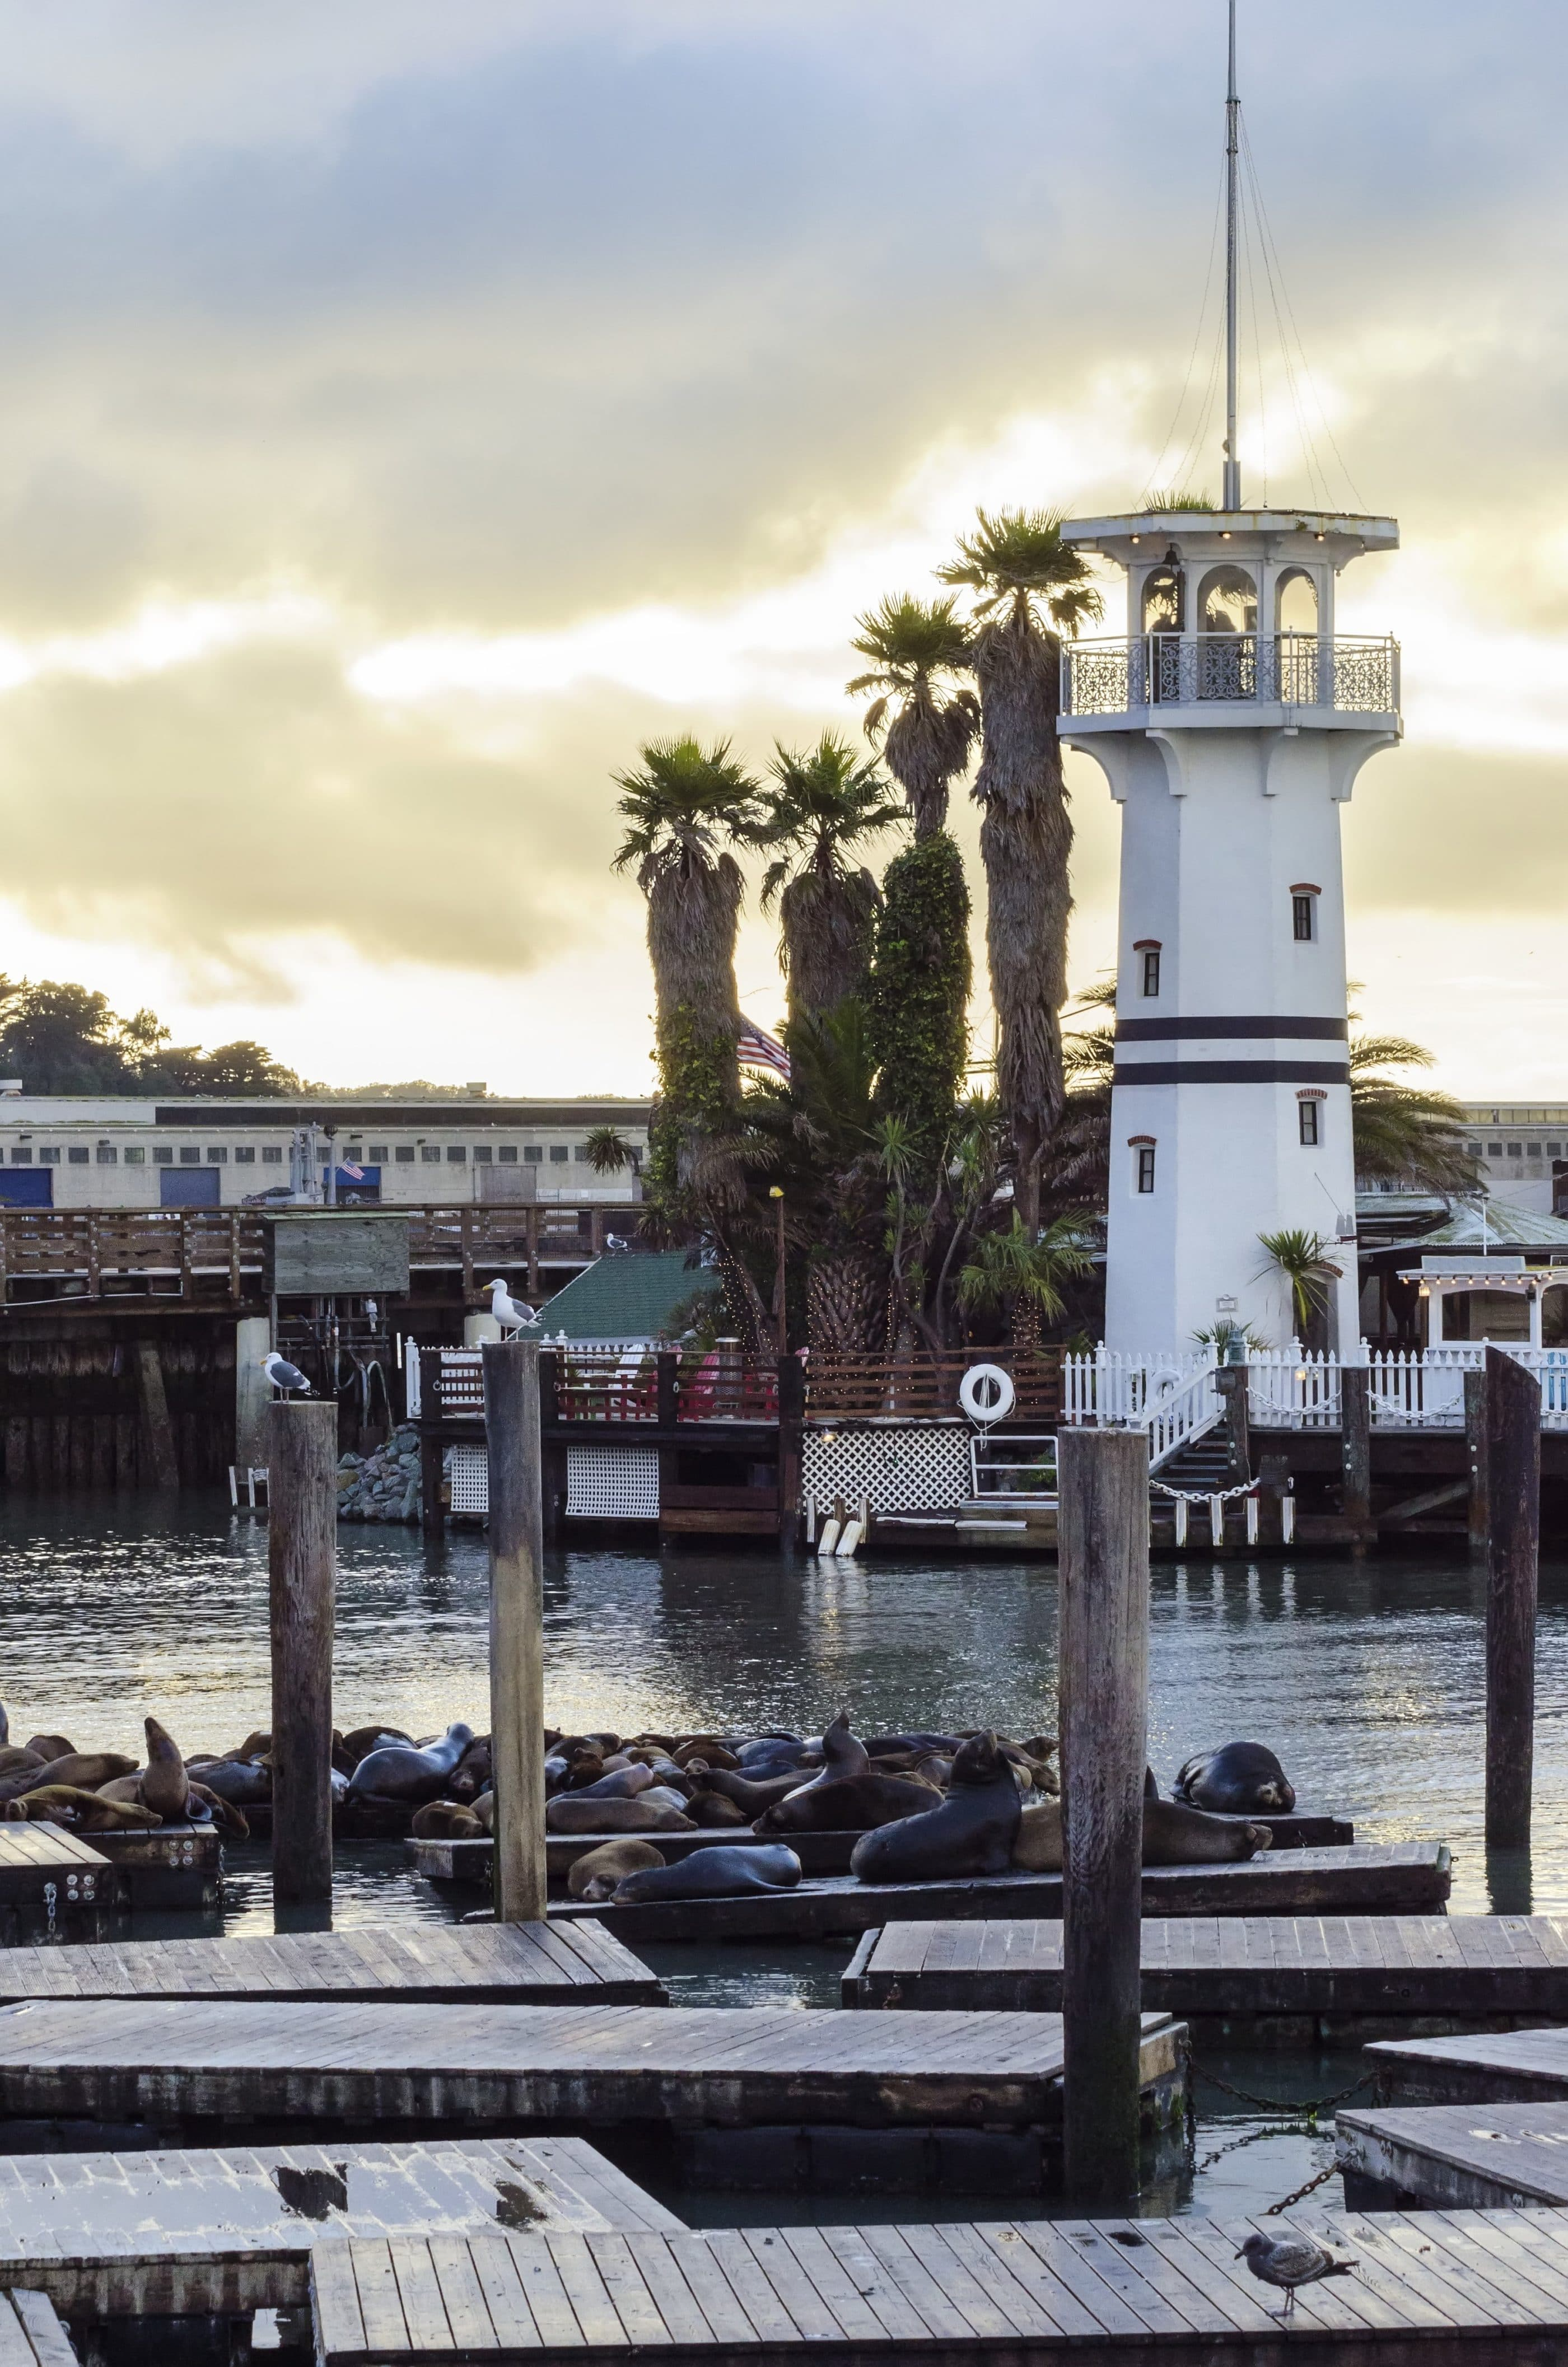 Pier 39 sea lions lounging with the lighthouse in the background.